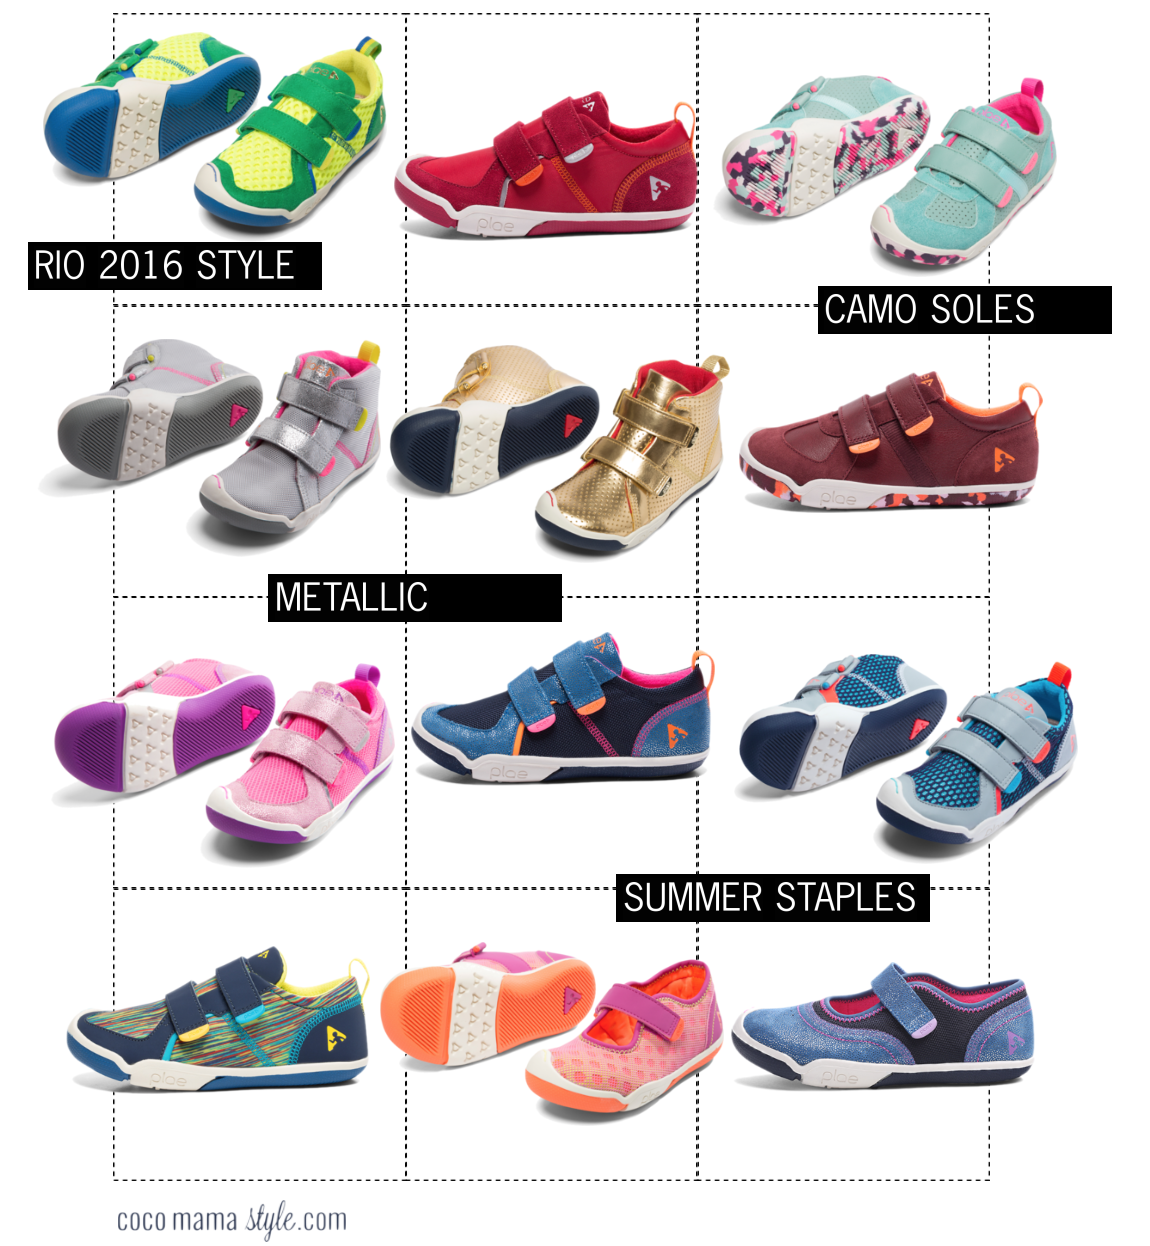 coco mama style | mini style | kids shoes | childrens | PLAE UK shoes